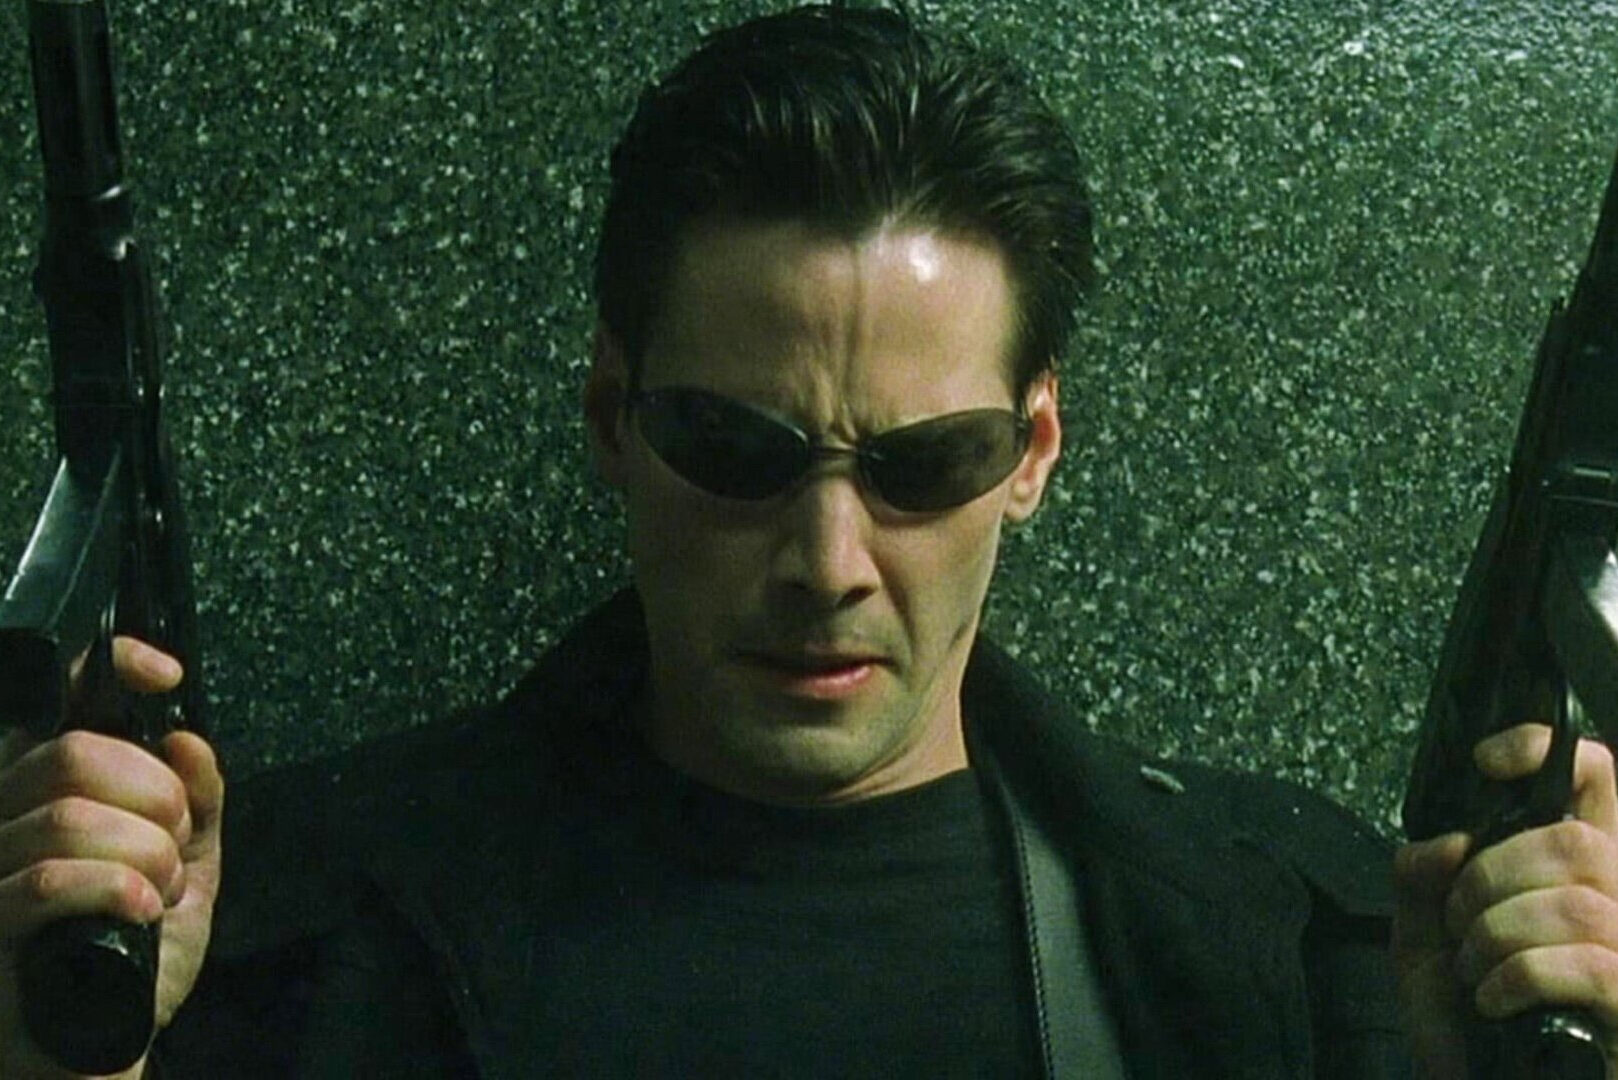 Keanu Reeves And The Matrix 4 Under Fire For Faking Filming To Cheat on COVID Restrictions